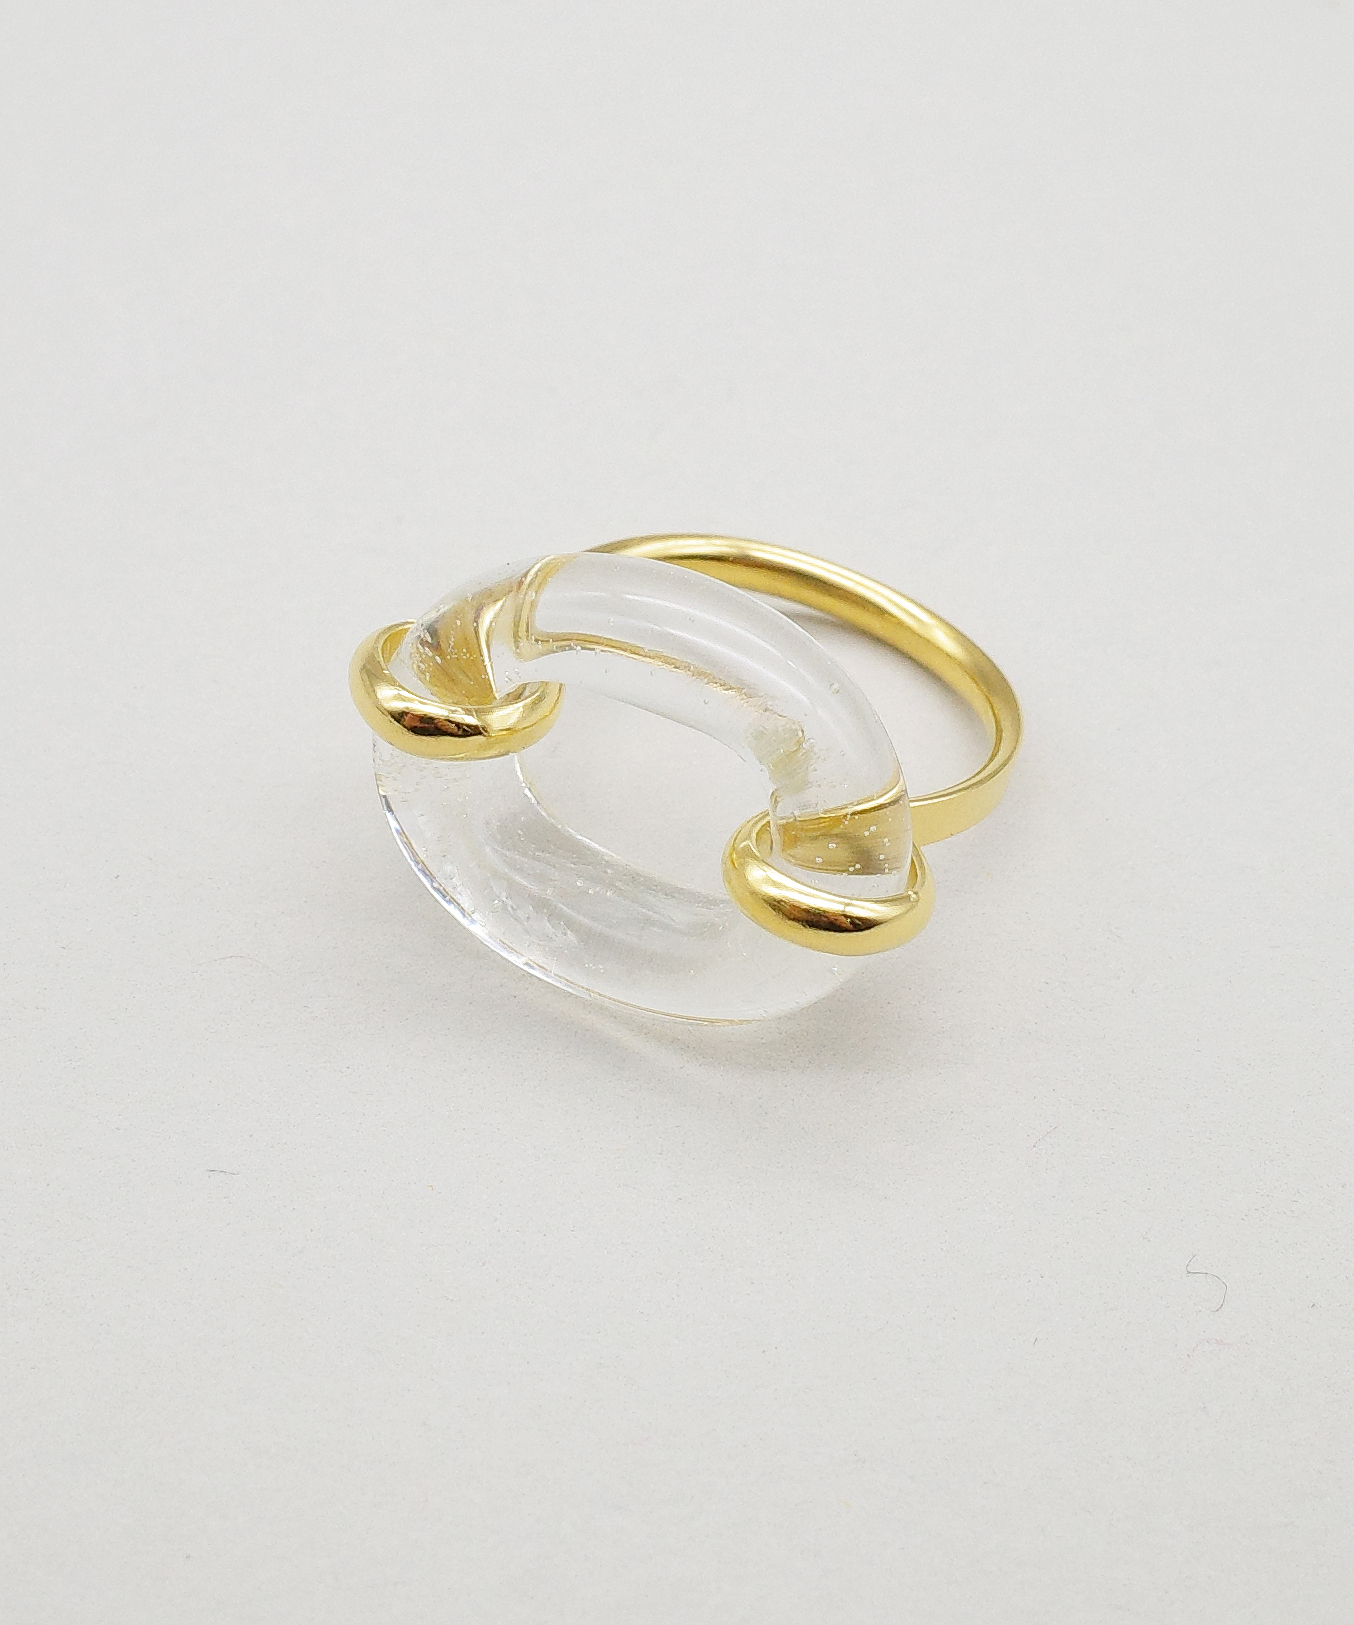 【CLED / クレッド】IN THE LOOP Ring / リング / 14K Gold Filled×Clear Air